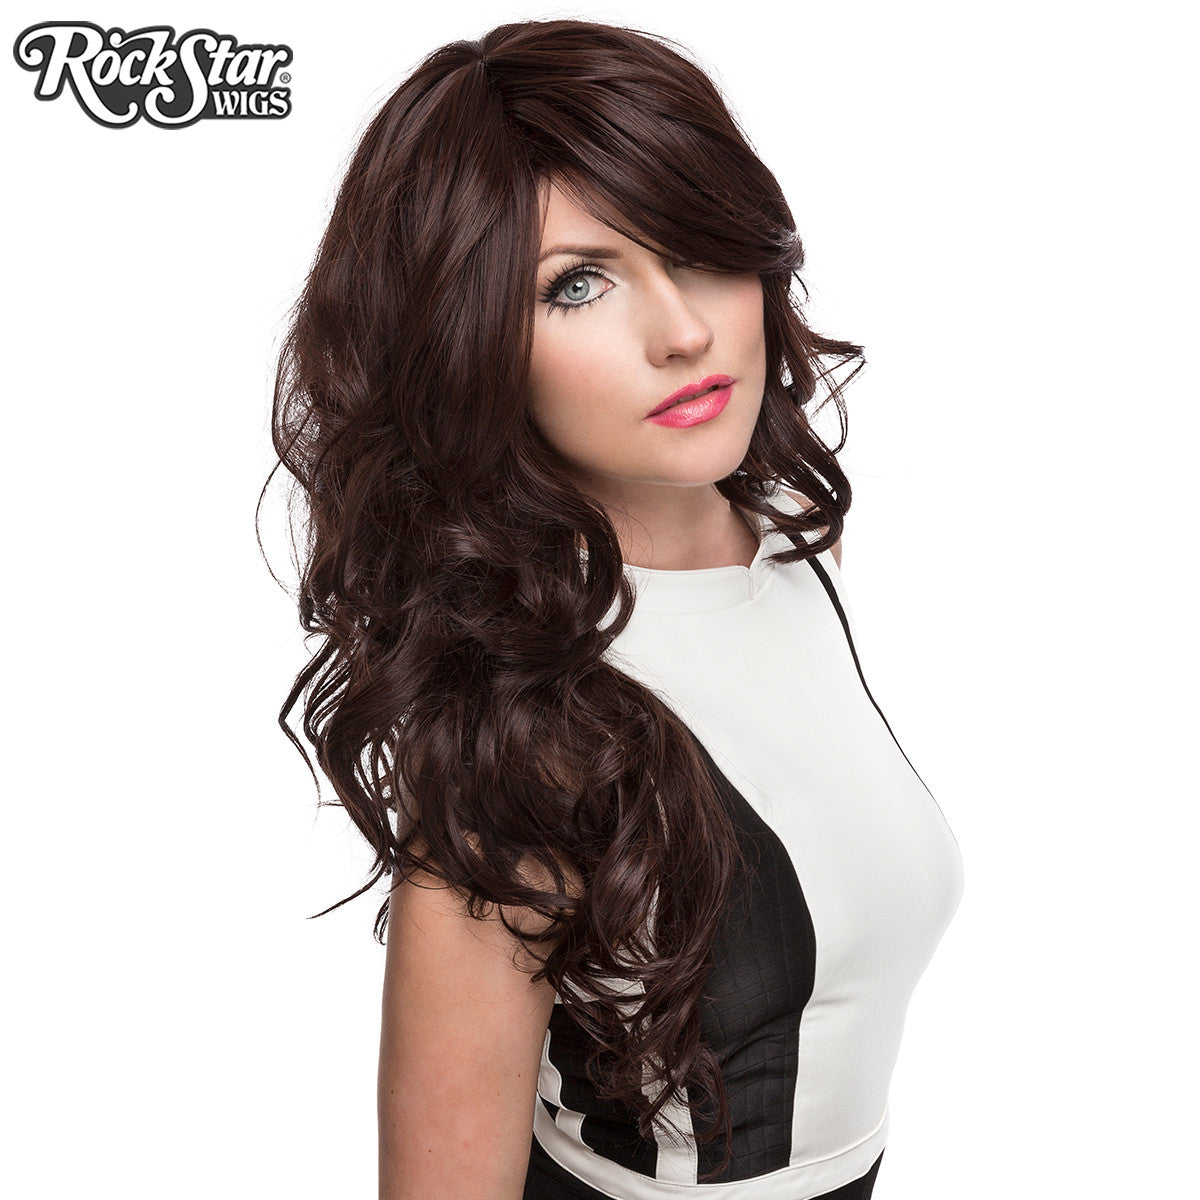 RockStar Wigs® <br> Farrah™ Collection - Femme Fatale- 00171